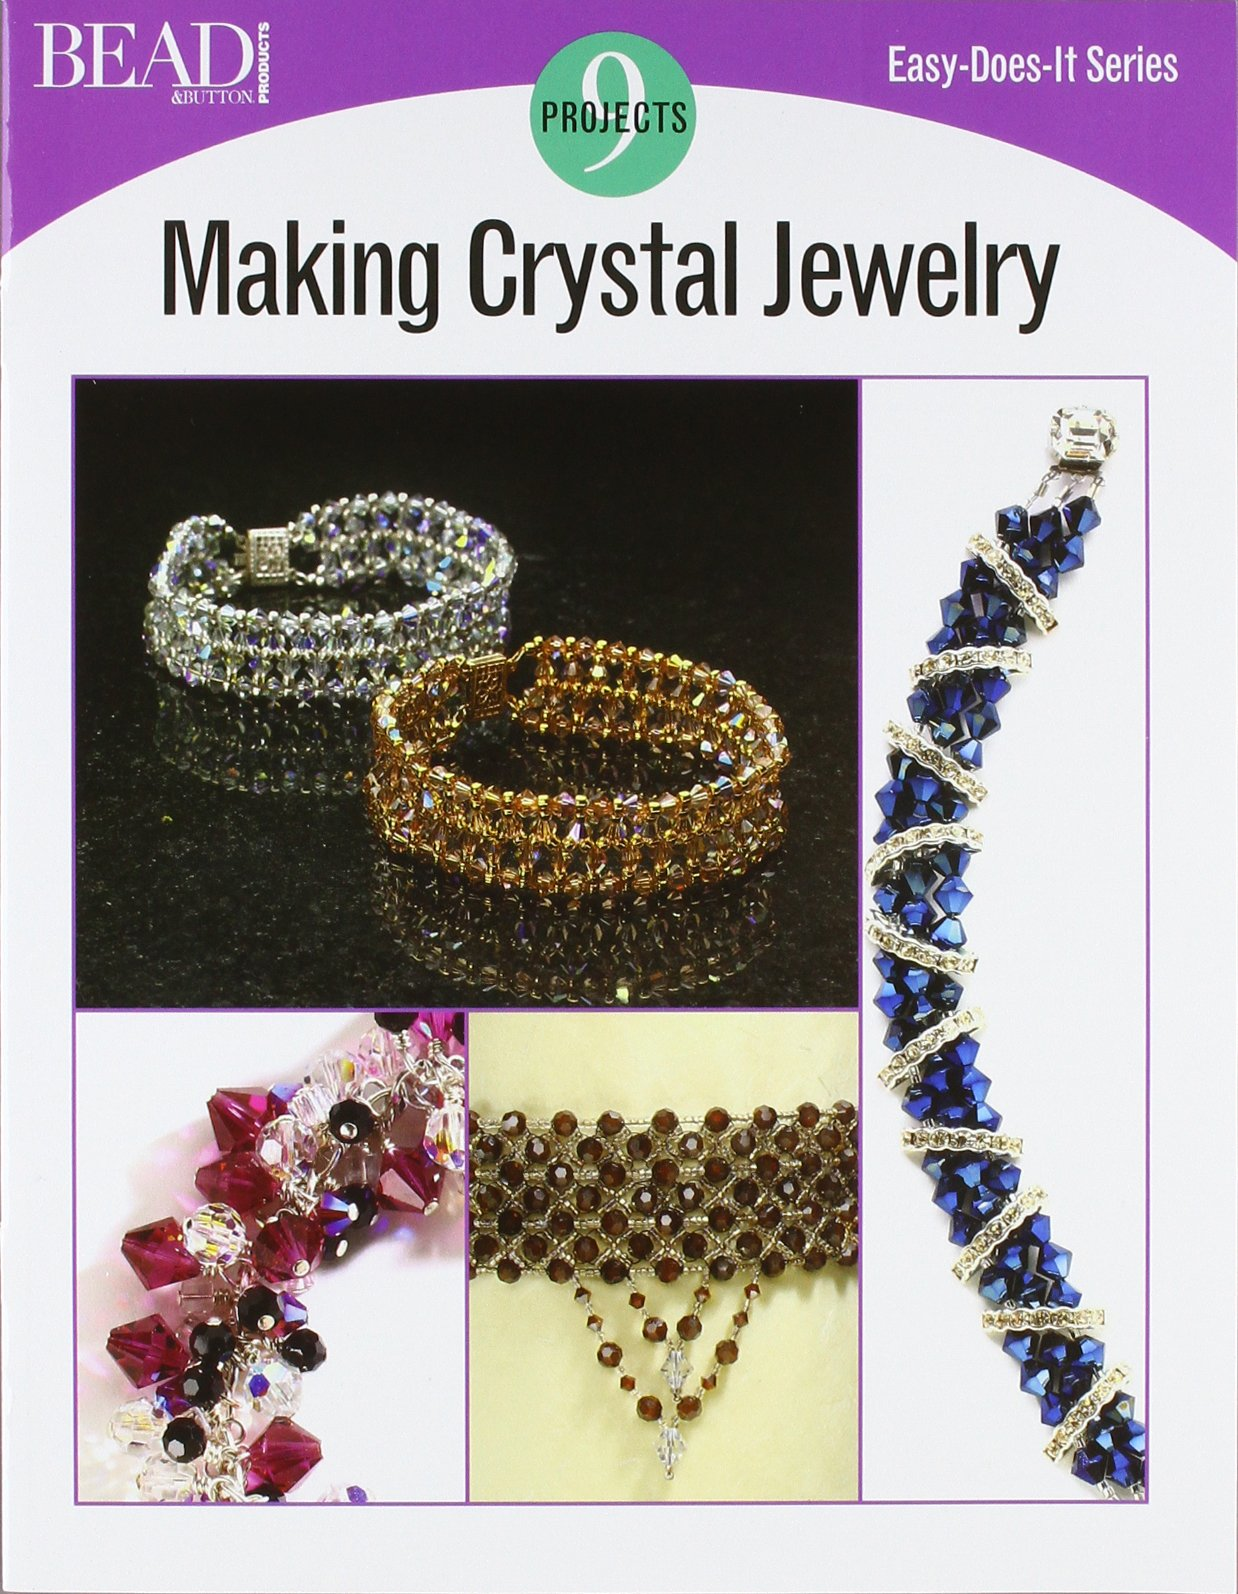 Making Crystal Jewelry (Easy-Does-It)